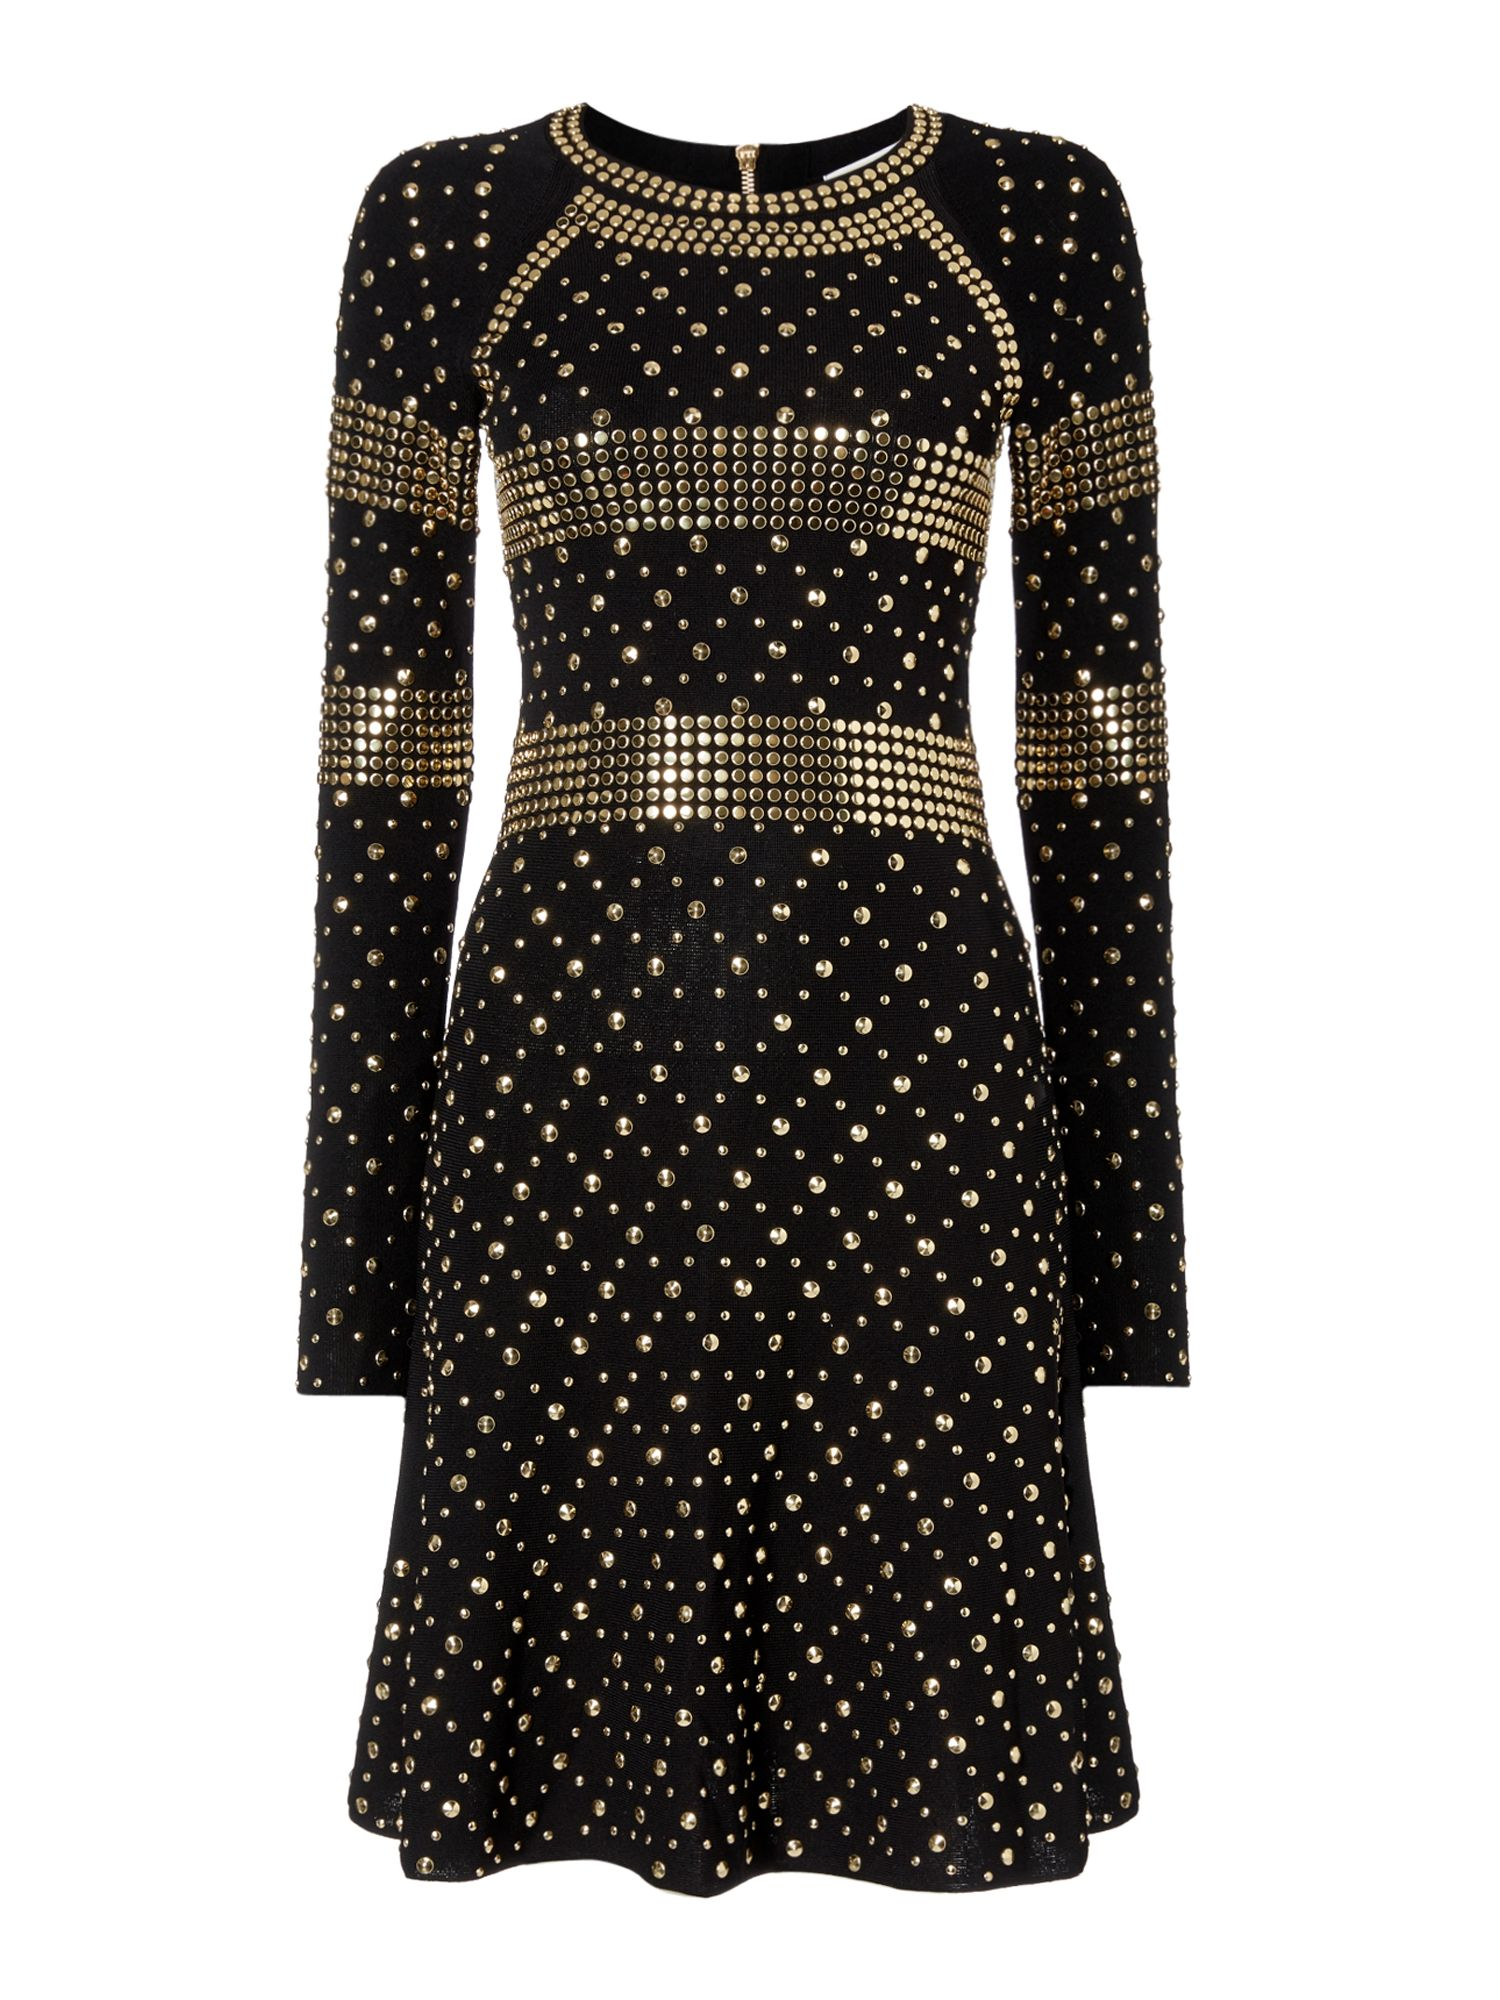 Michael Kors Studded knit dress, Black